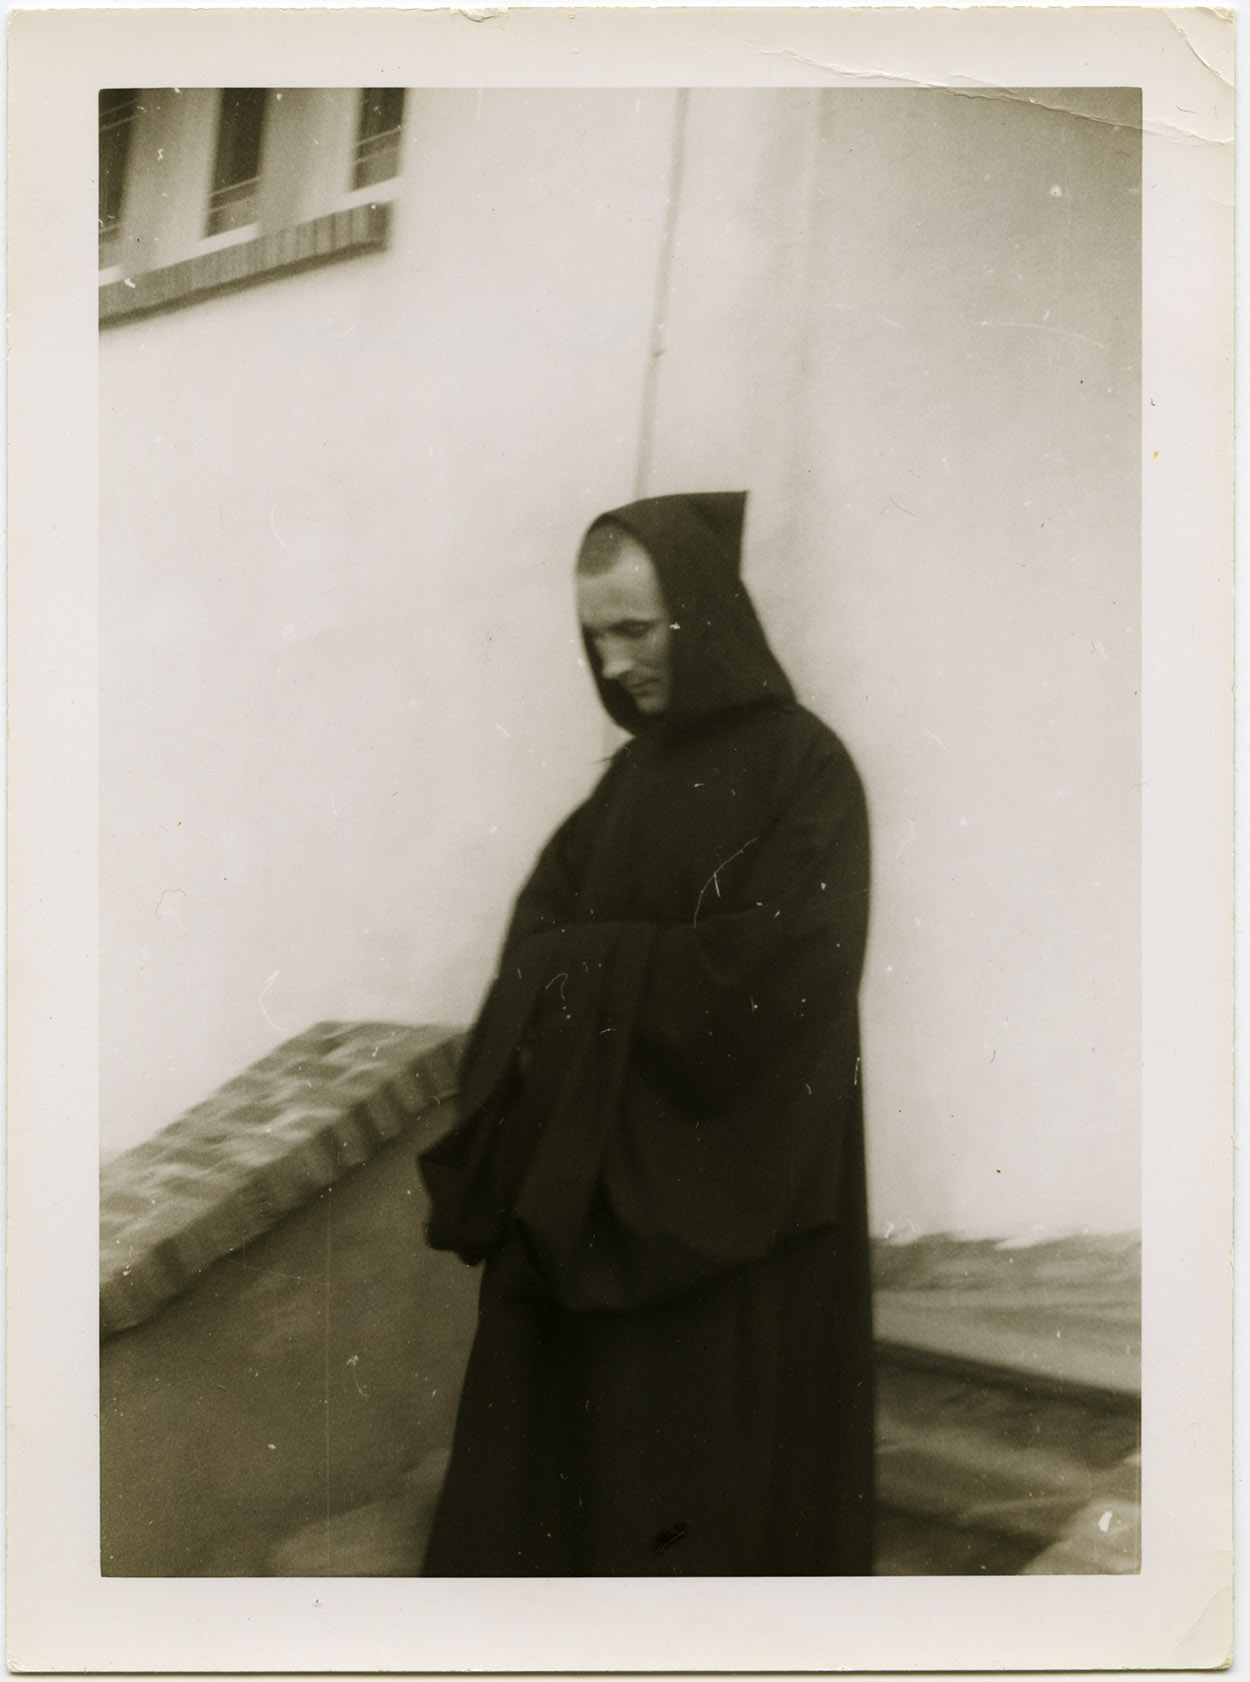 Image of Brother David at Mount Savior Monastery, ca. 1956